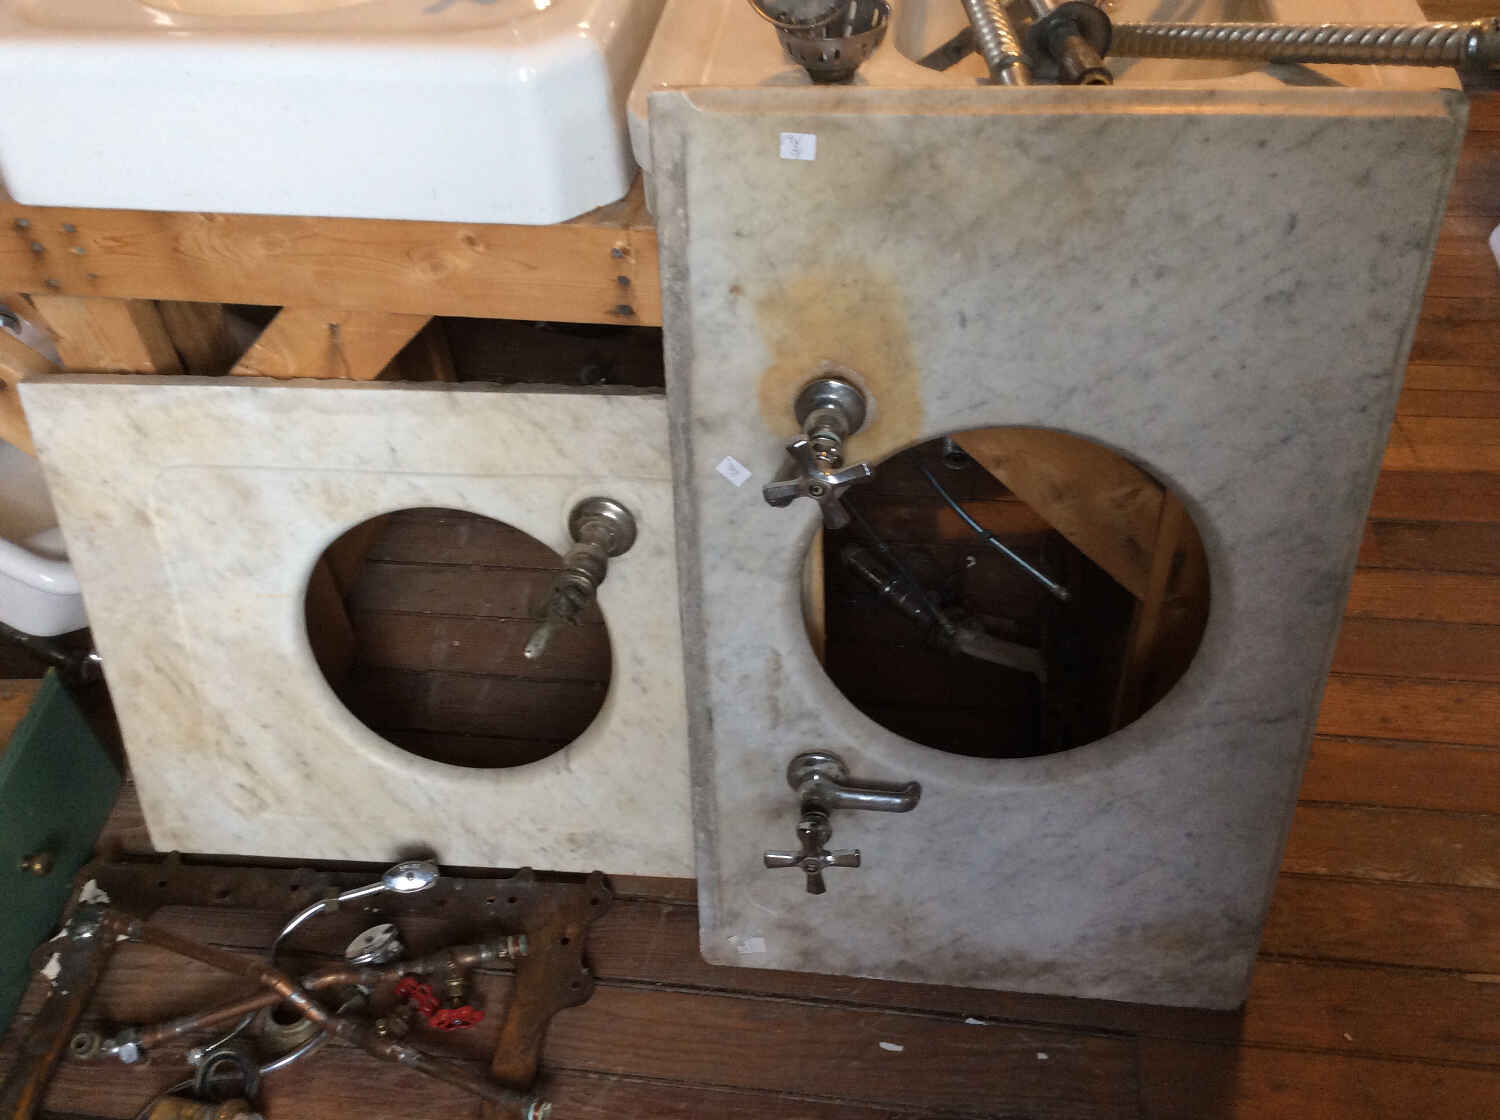 Antique Carrera Marble Sink Decks w/Round Opening and Faucets